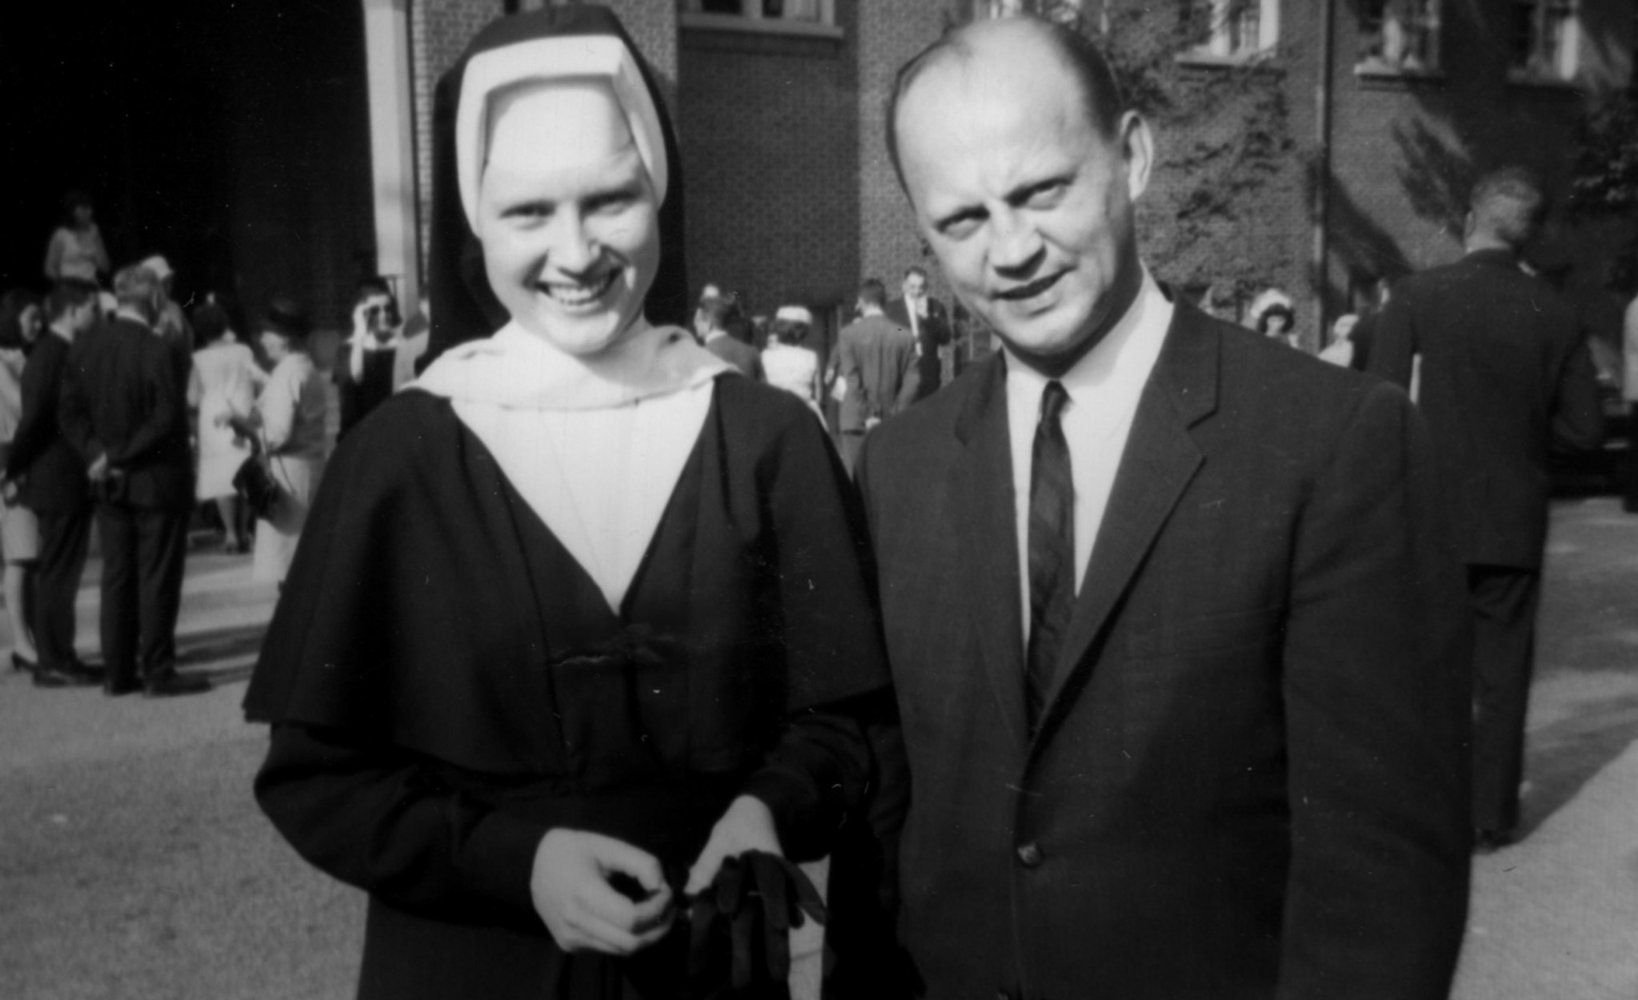 A nun and a man in a suit smile for a photograph.